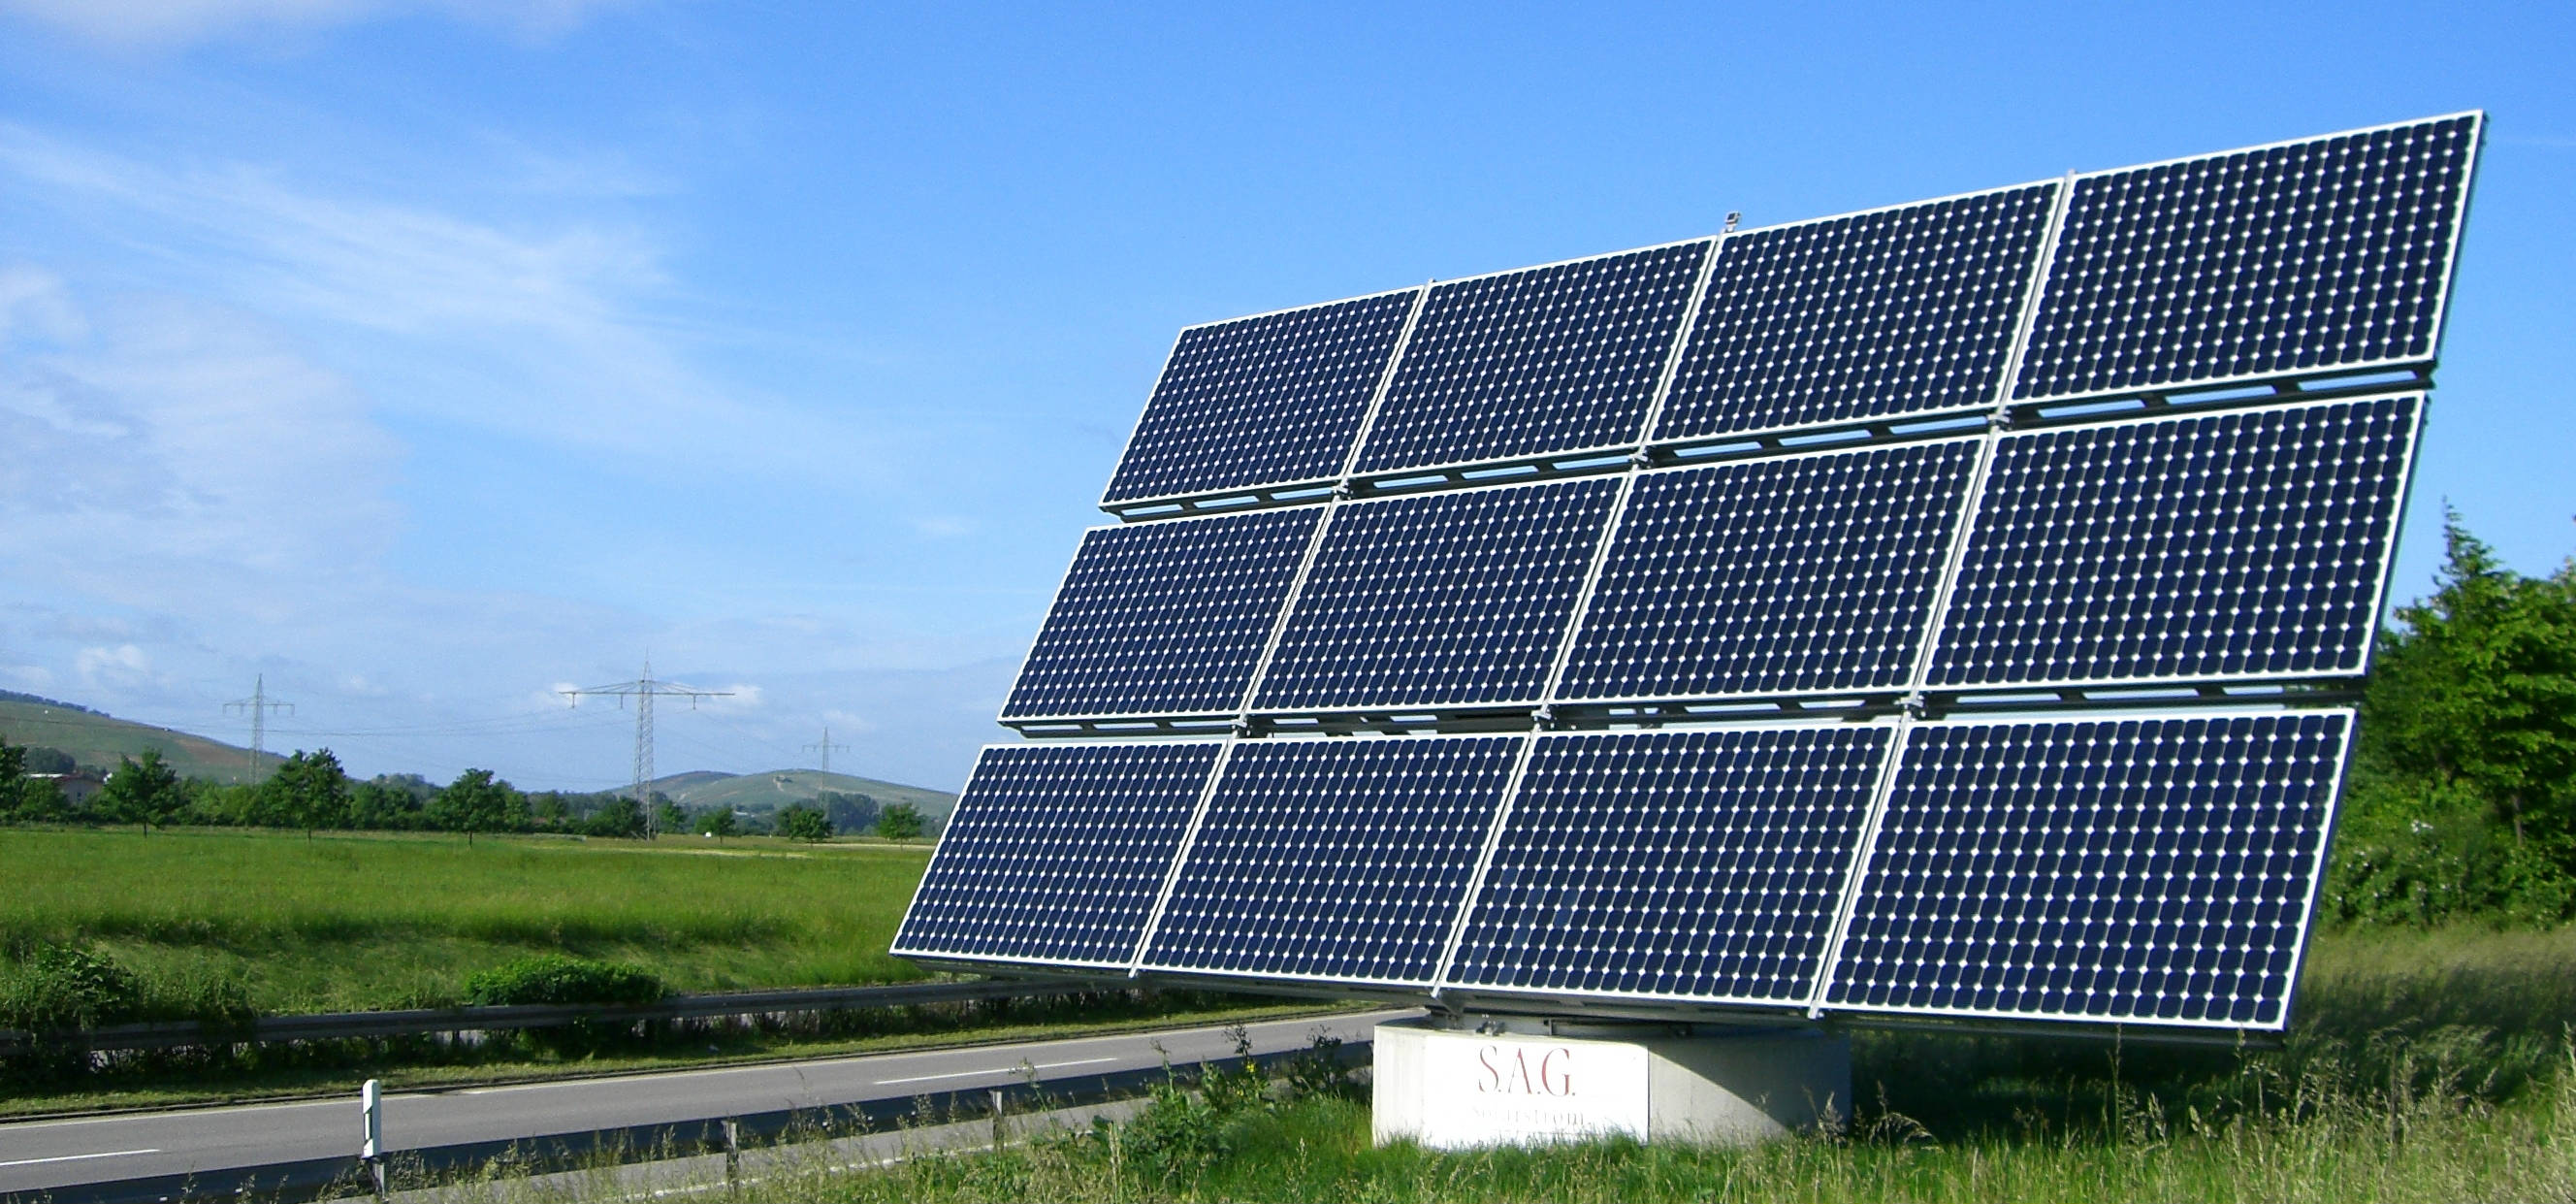 What is the Alternative energy to use for the solar system?